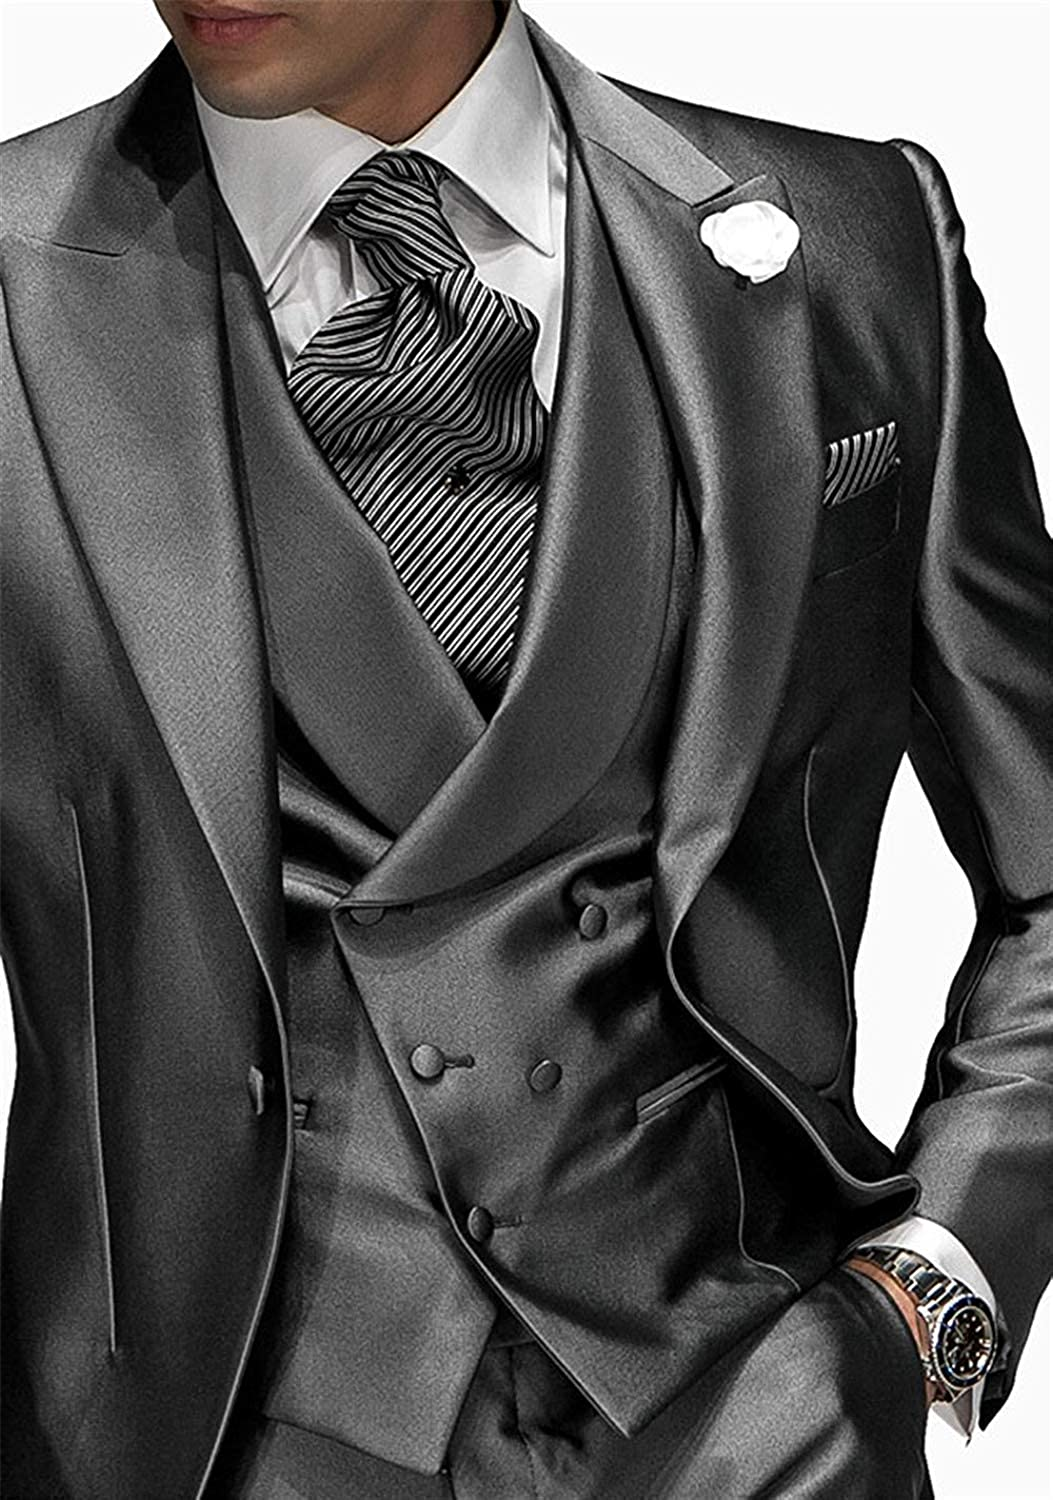 Fenghuavip Mens Modern Silver Gray 3 Pieces Tuxedo Suits for Grooms